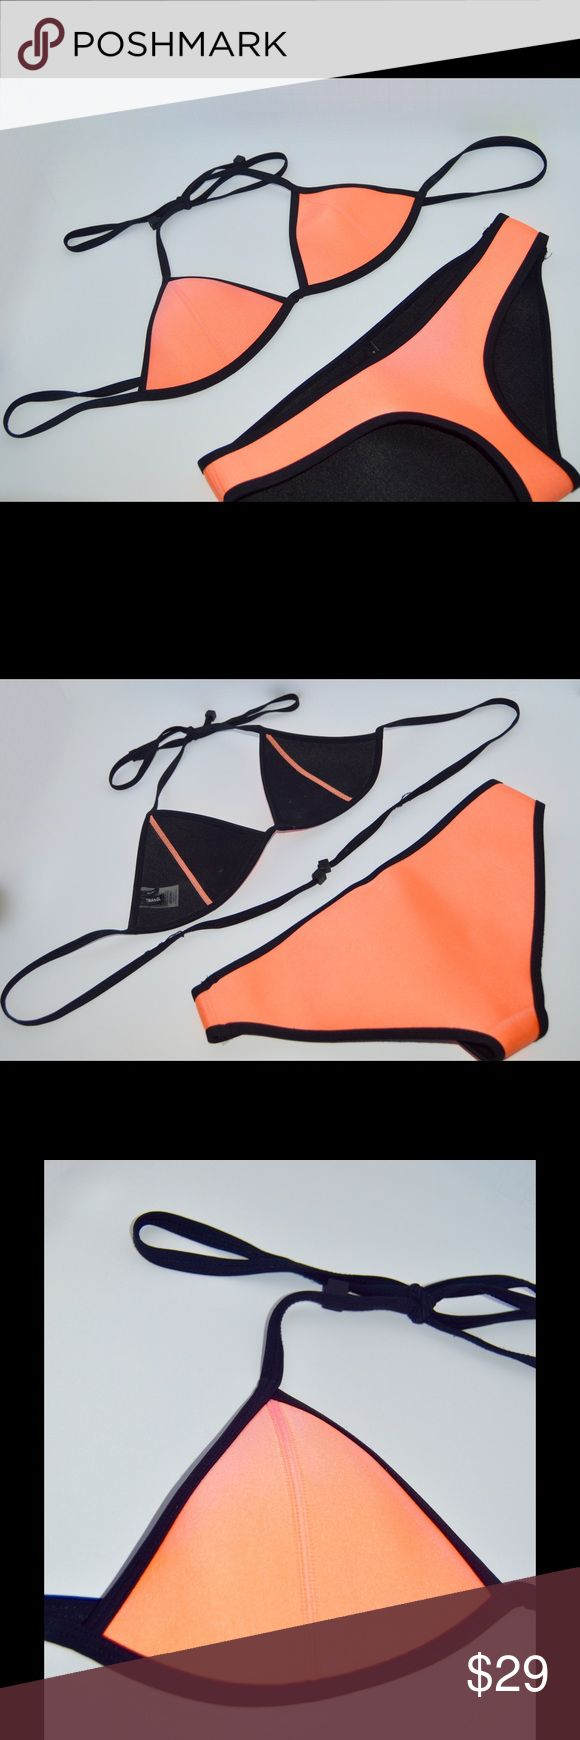 Triangl Bikini TOP Neon orange Triangl brand bikini TOP! See last picture for damage  NO TRADES  Will accept reasonable offers!  comment any questions you may have! triangl swimwear Swim Bikinis